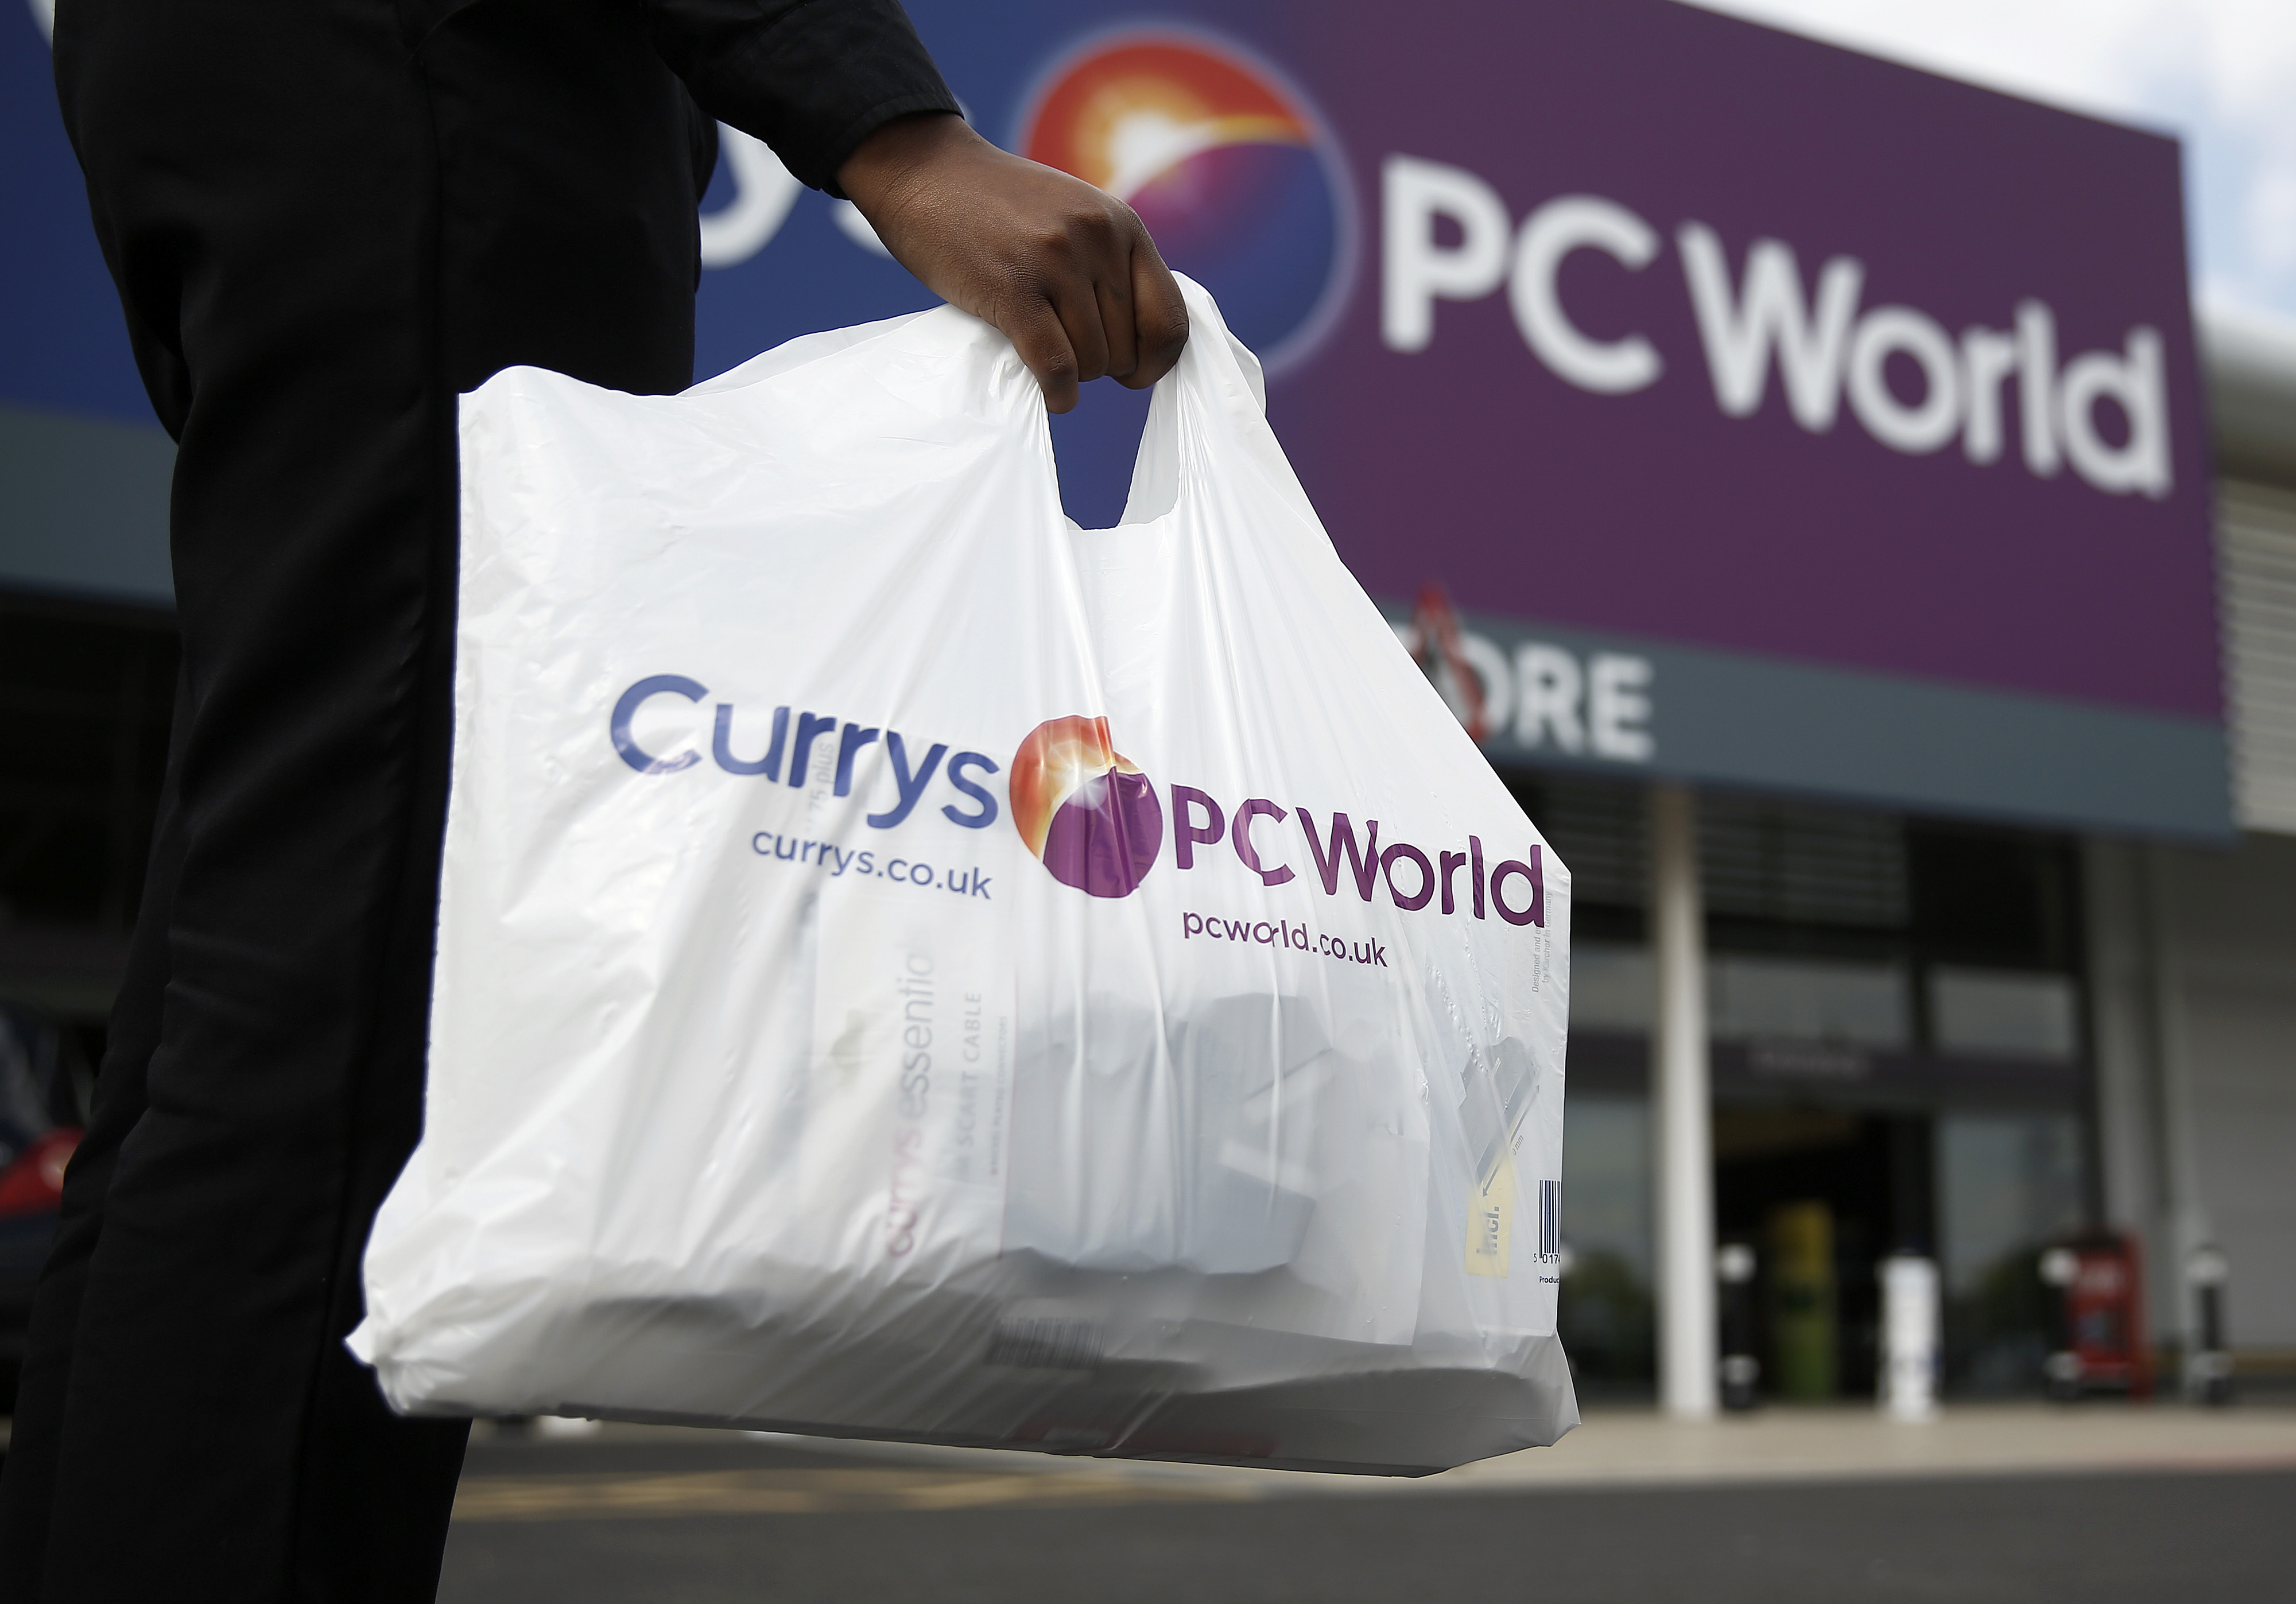 The returns window for Currys PC World items has been extended from 14 to 21 days